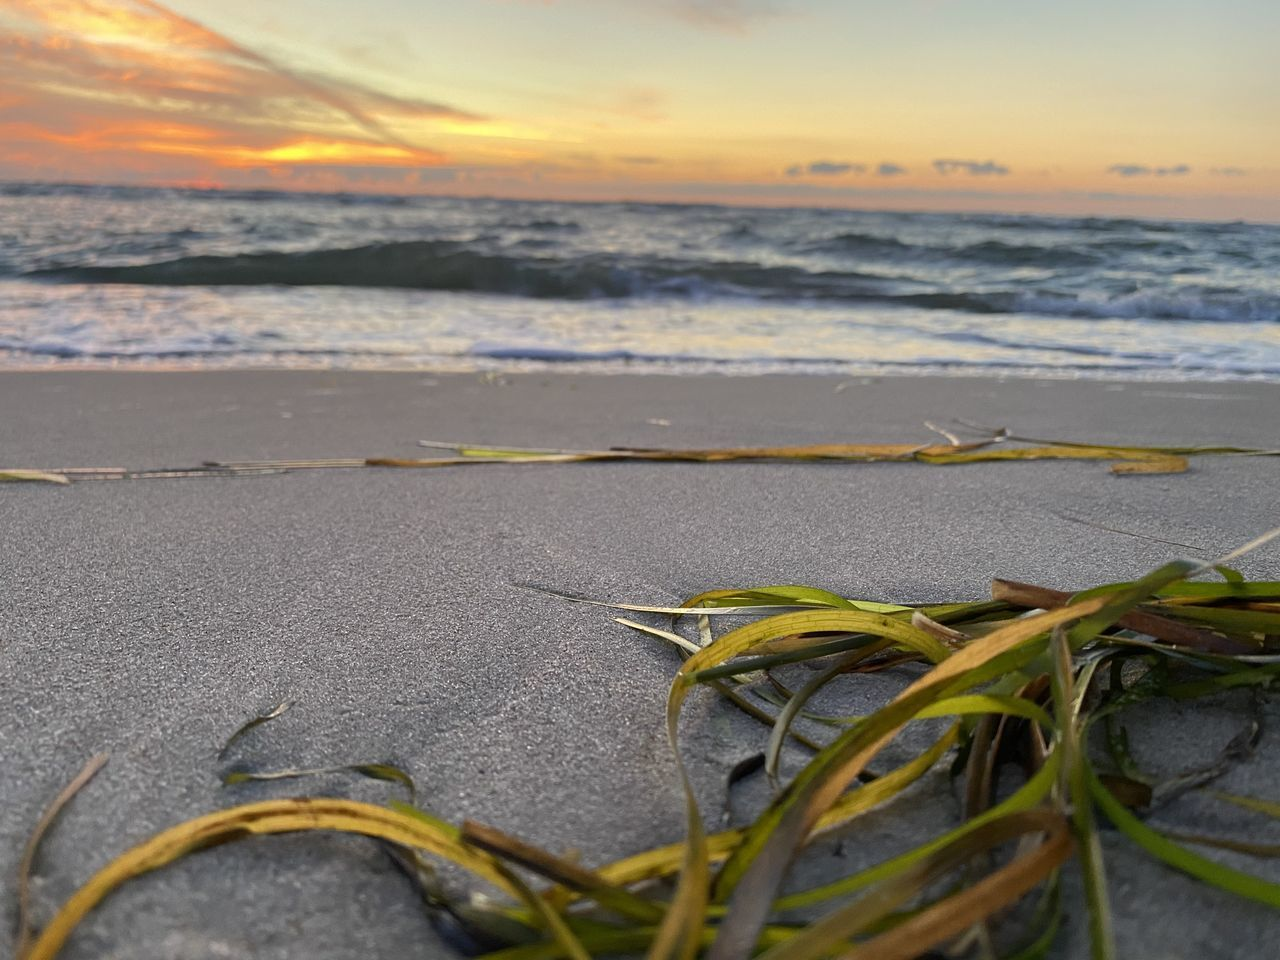 CLOSE-UP OF SEA SHORE AGAINST SUNSET SKY